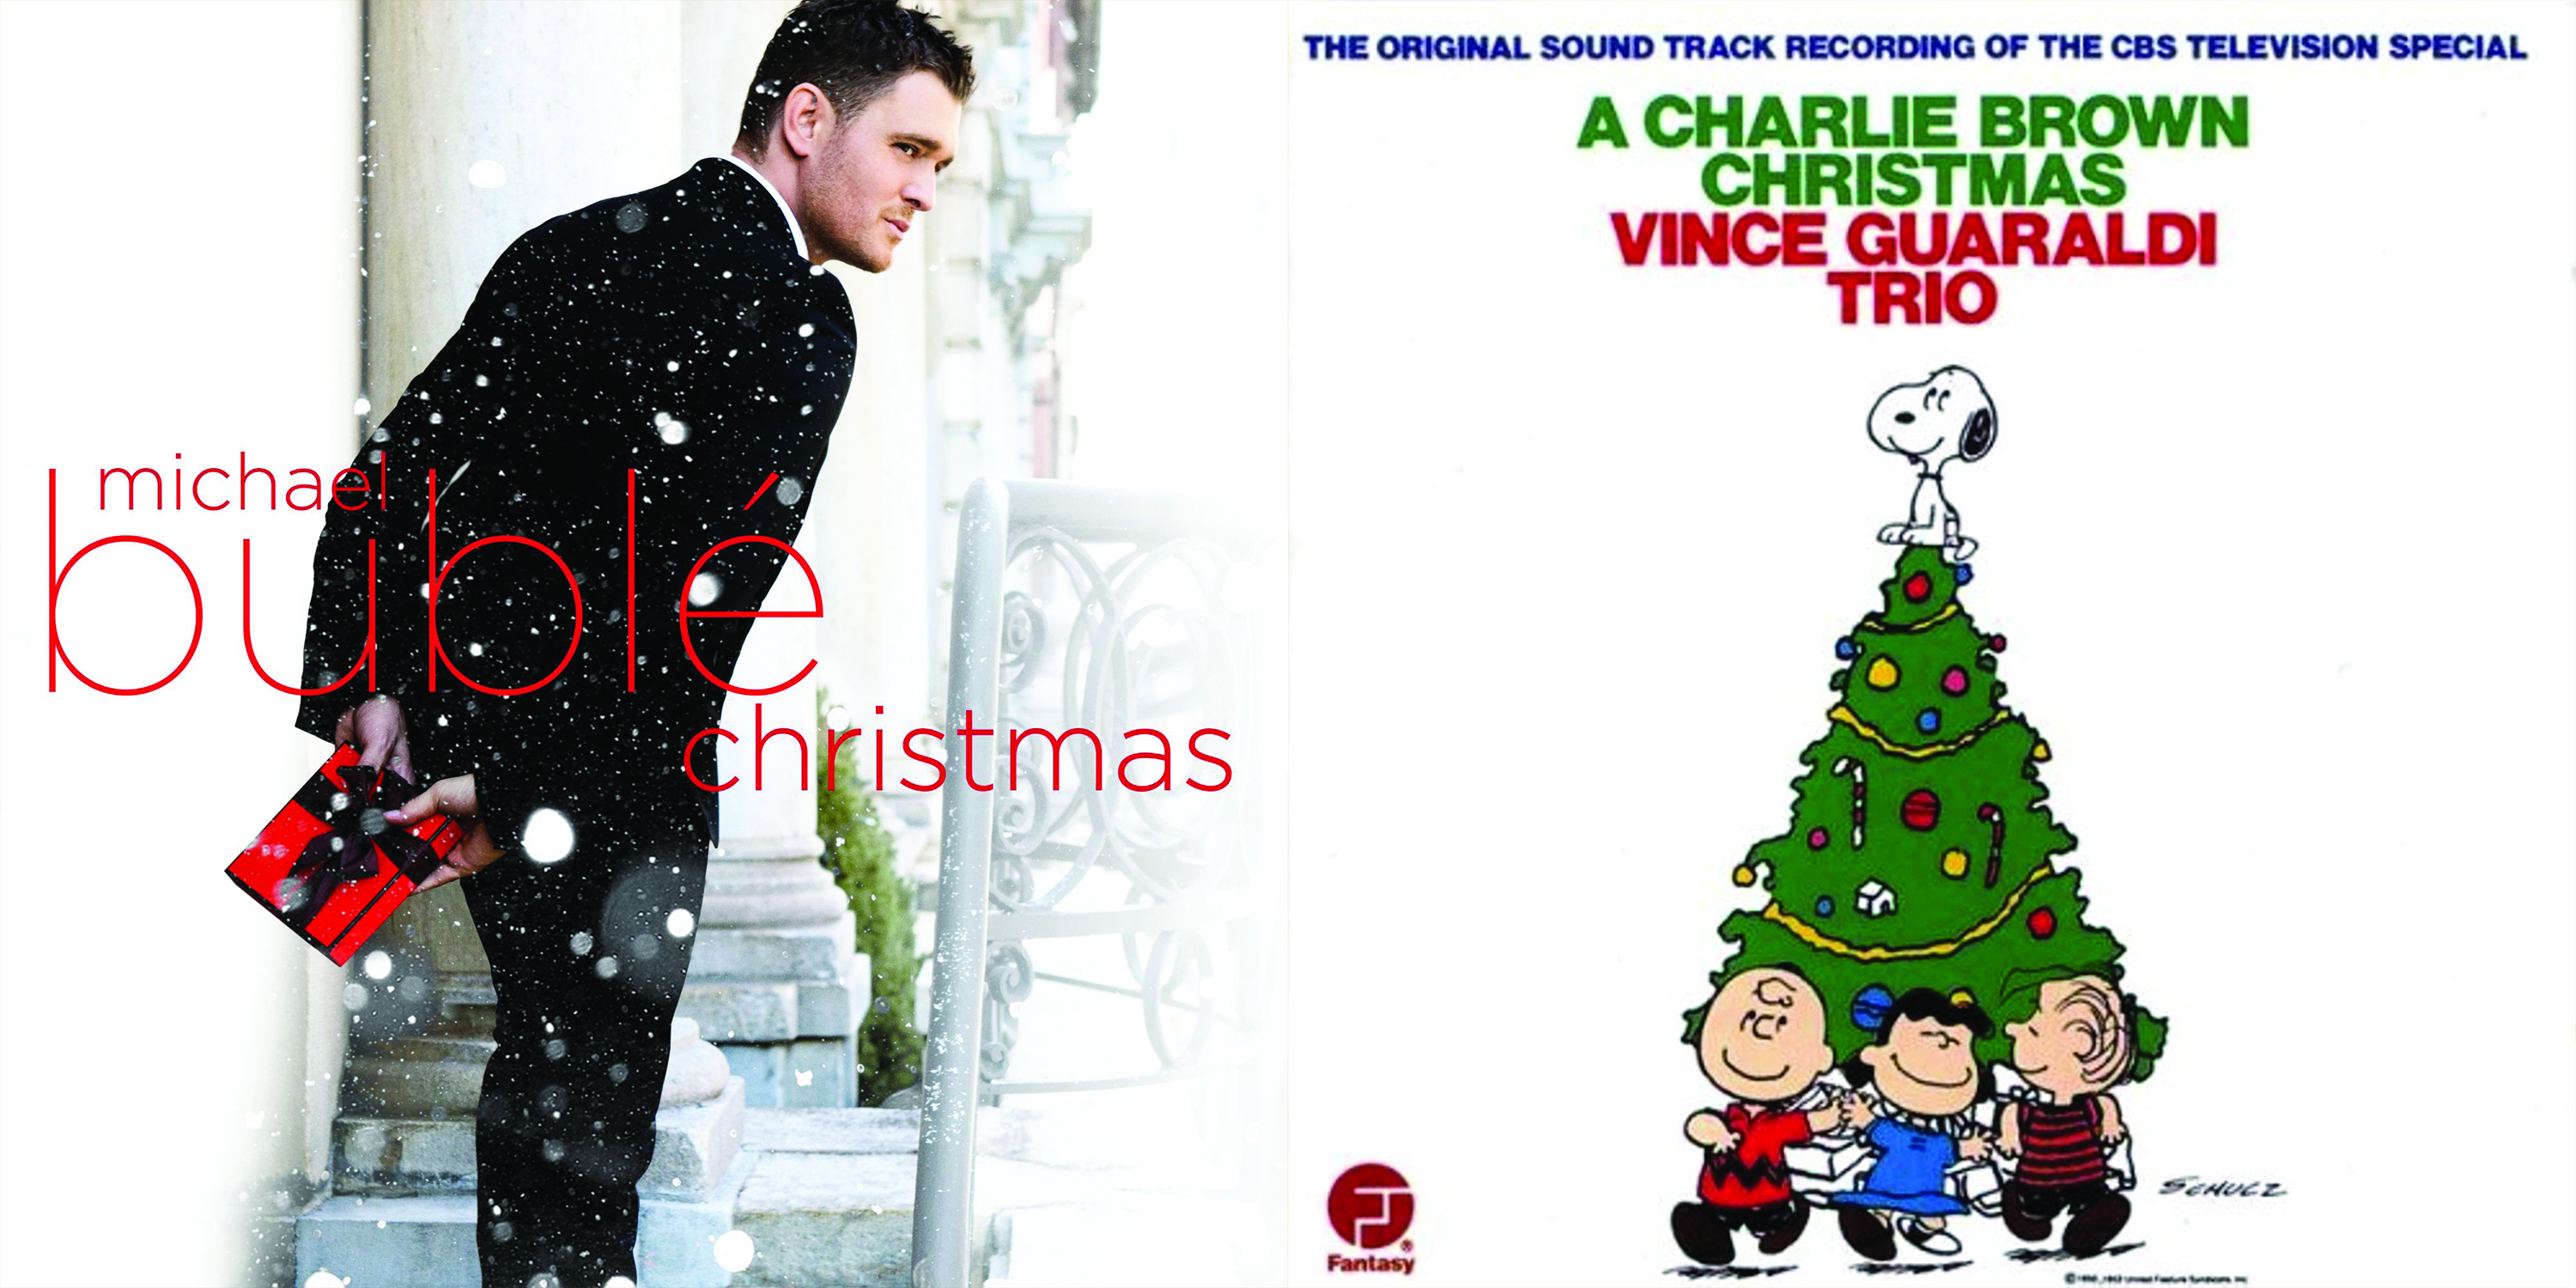 The five best and worst Christmas albums | The Peak